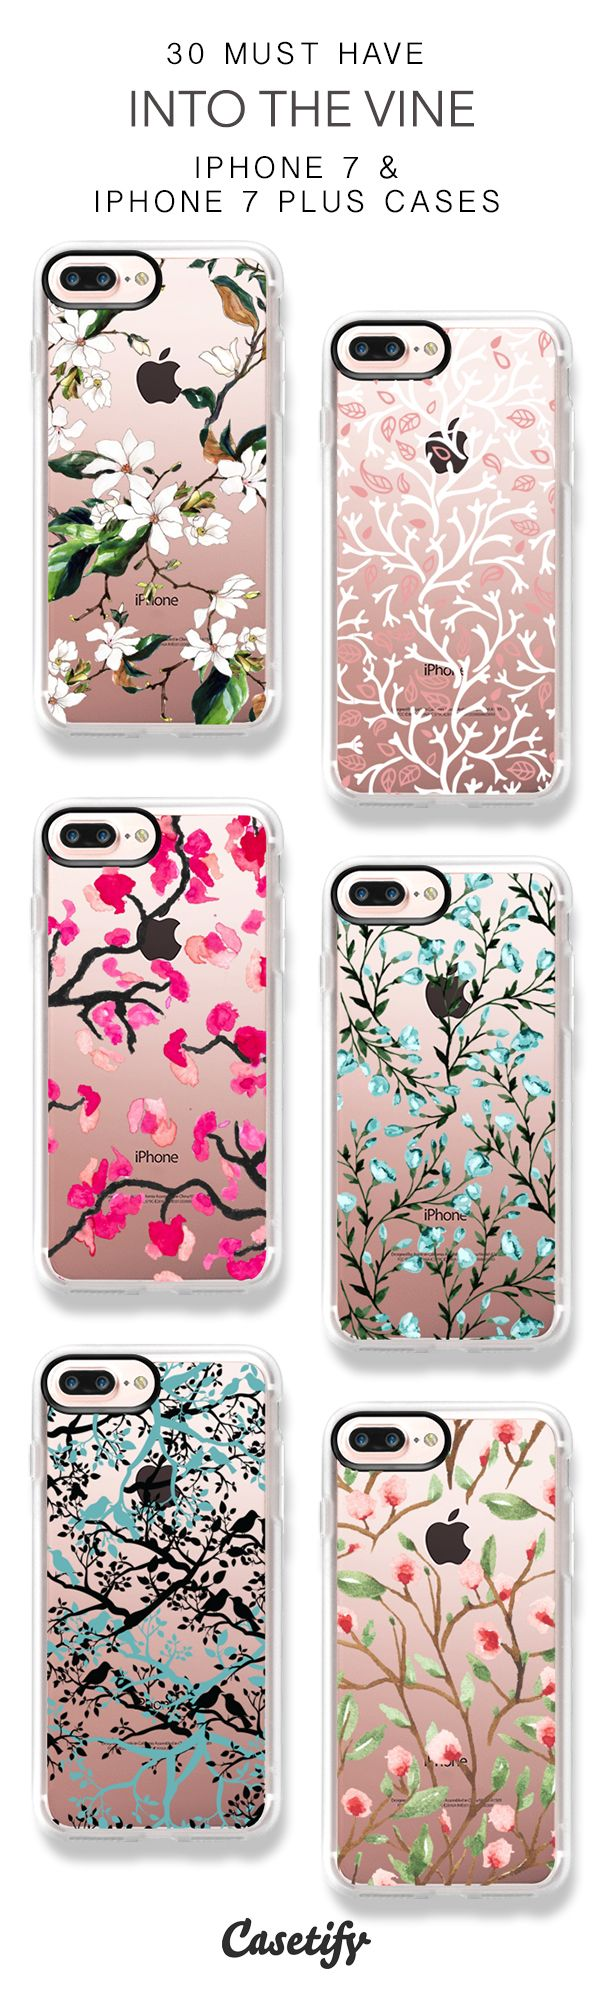 30 Most Popular Into The Vine iPhone 7 Cases and iPhone 7 Plus Cases. More Tree iPhone case here > https://www.casetify.com/collections/top_100_designs#/?vc=WUTxnvDe4r http://amzn.to/2qZ3RzU